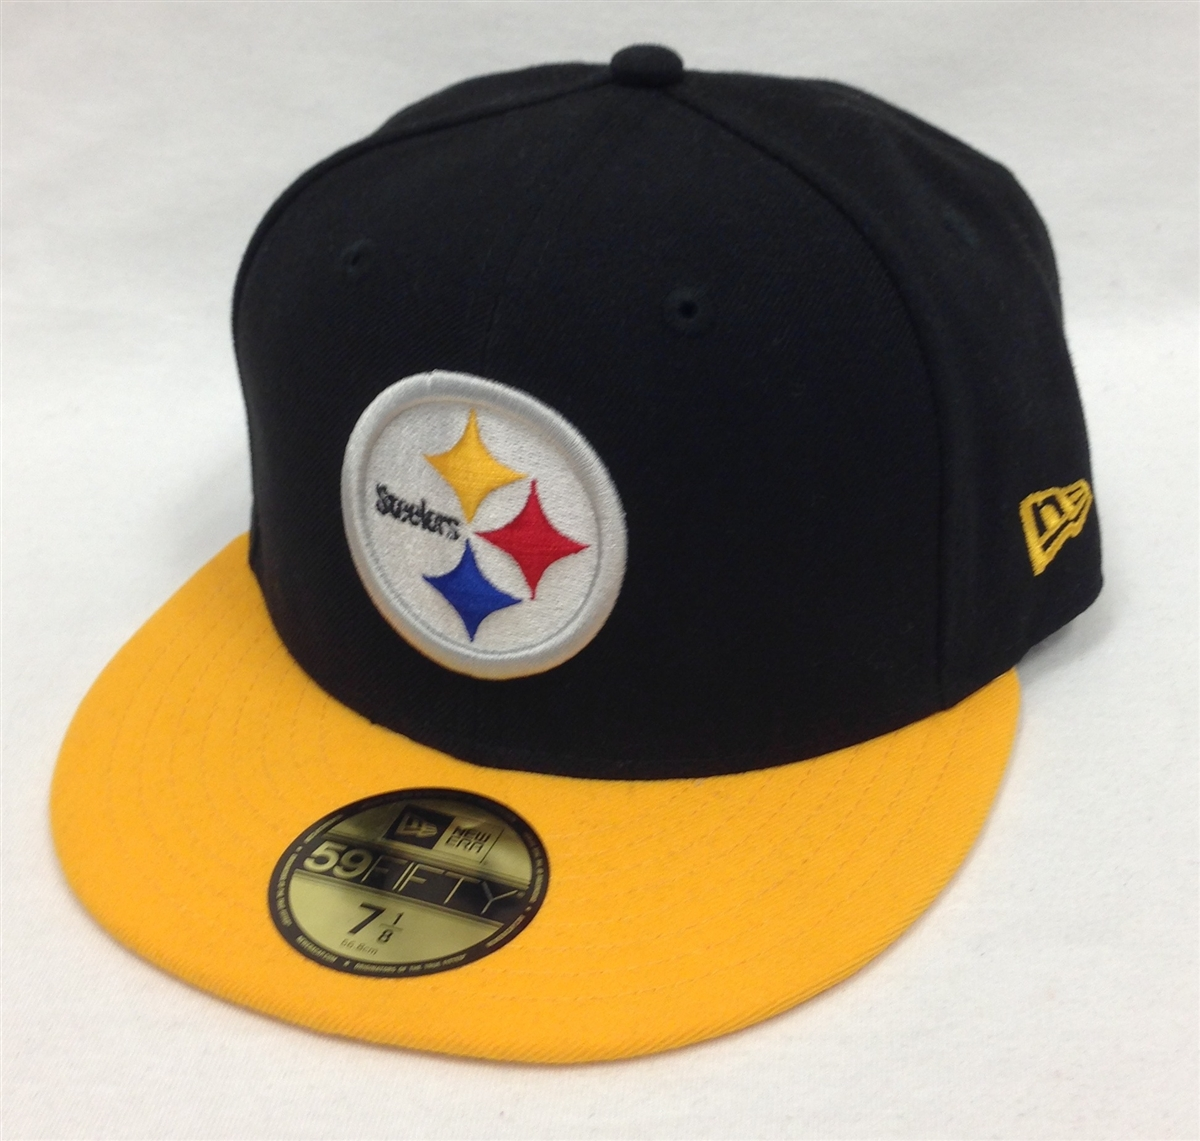 New Era 59Fifty Black Team Pittsburgh Steelers Black   Yellow Fitted ... aa8aa1a16a8b